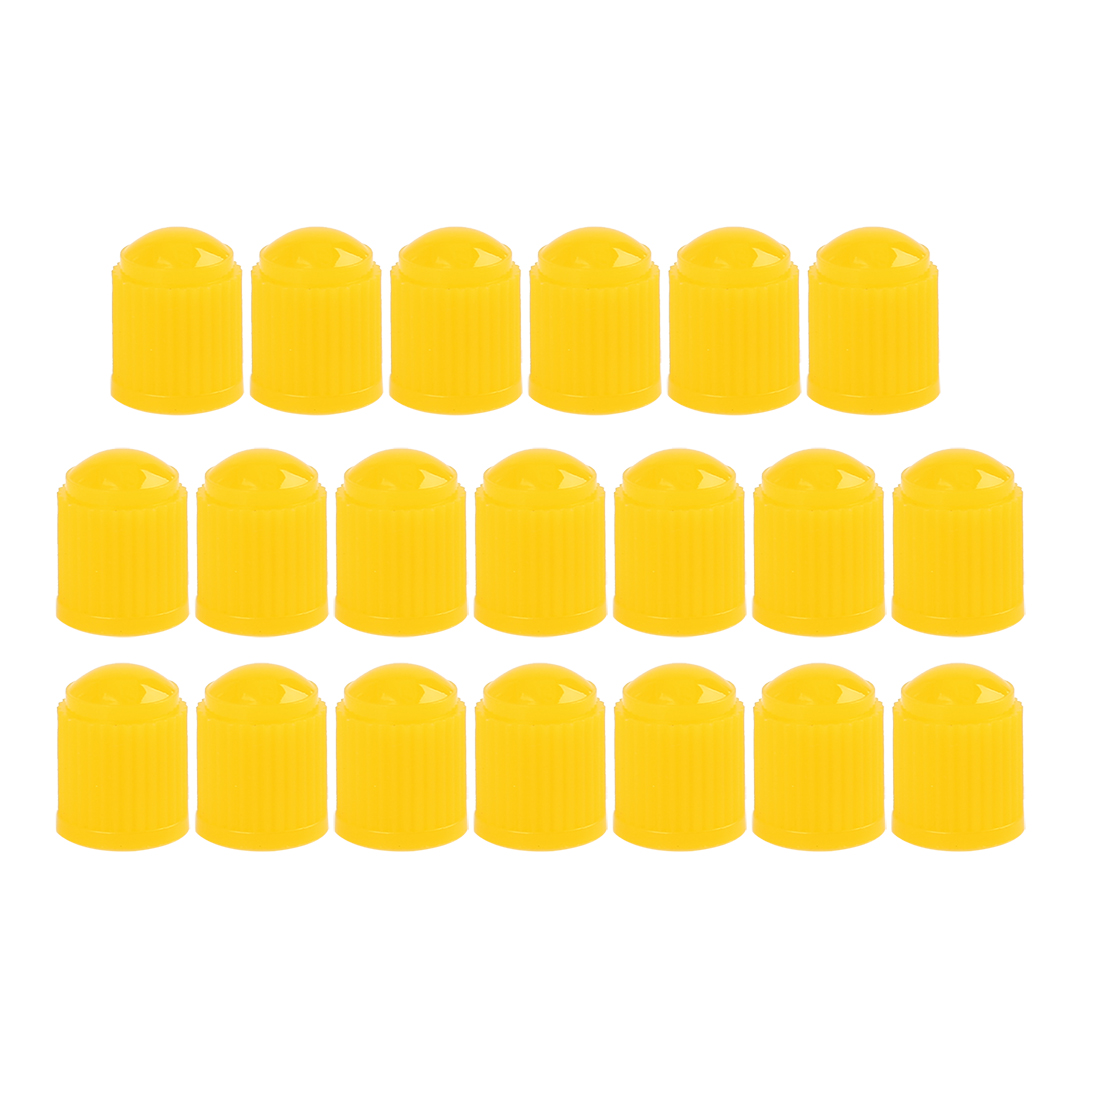 20pcs Yellow Plastic Universal Tire Valve Stem Cap Cover for Motorcycle Bike Car